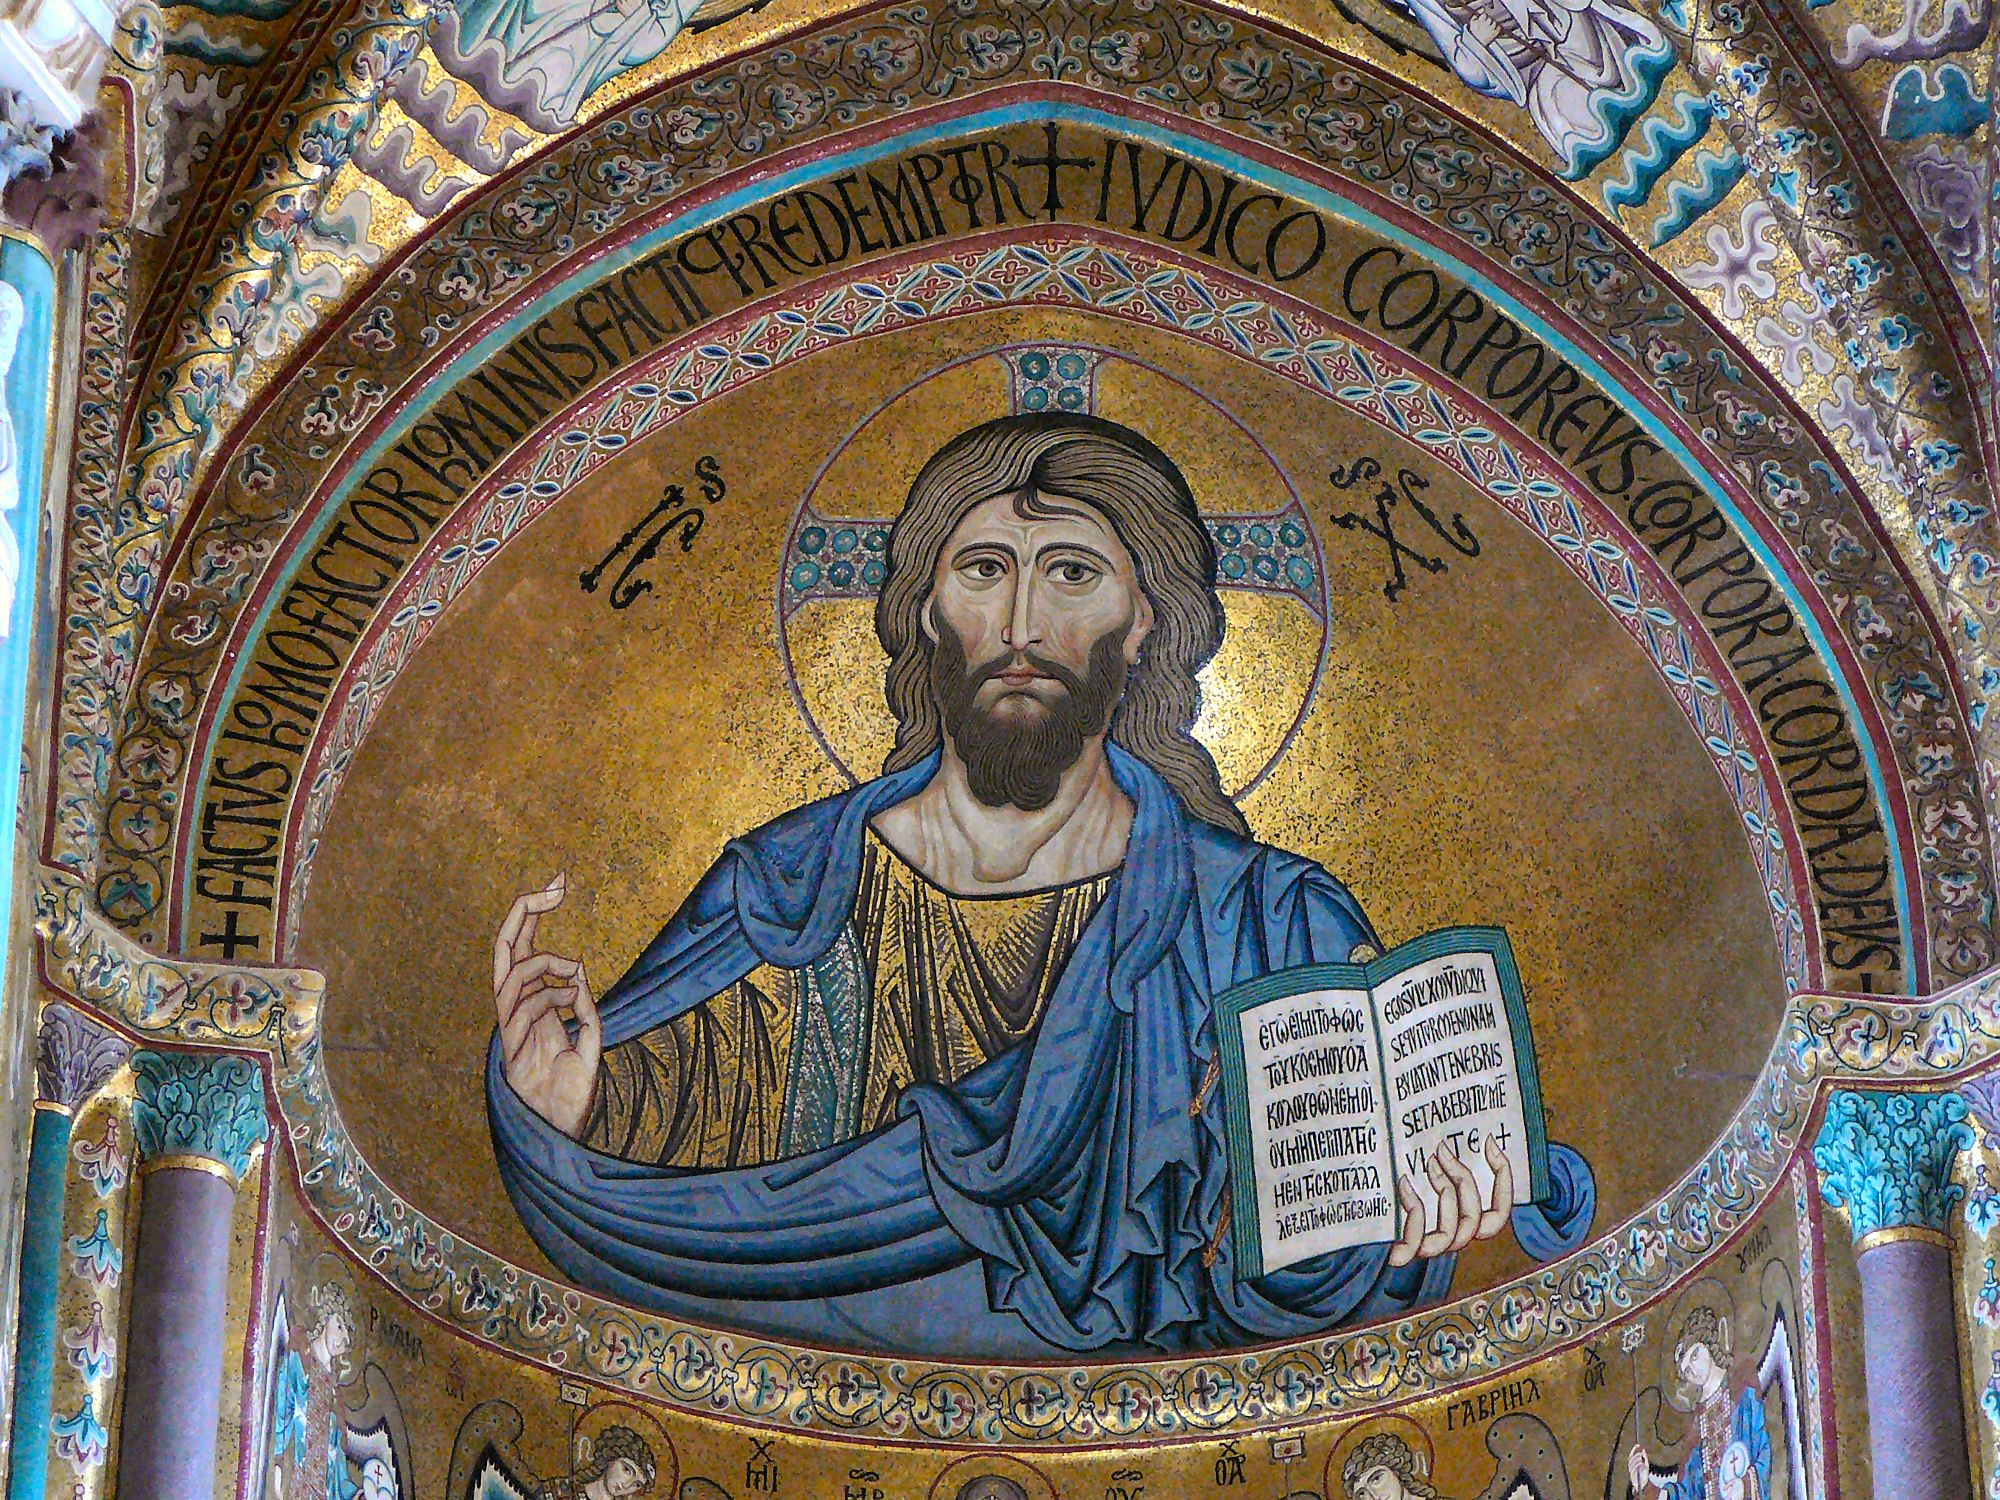 Christ Pantokrator in the apse of the Cathedral of Cefalù, Sicily, Italy. Mosaic in Byzantine style. - by Gun Powder Ma, 2007 (Christ_Pantokrator,_Cathedral_of_Cefalù,_Sicily.jpg) (CC BY-SA 3.0 [https://creativecommons.org/licenses/by-sa/3.0/deed.en]), via Wikimedia Commons